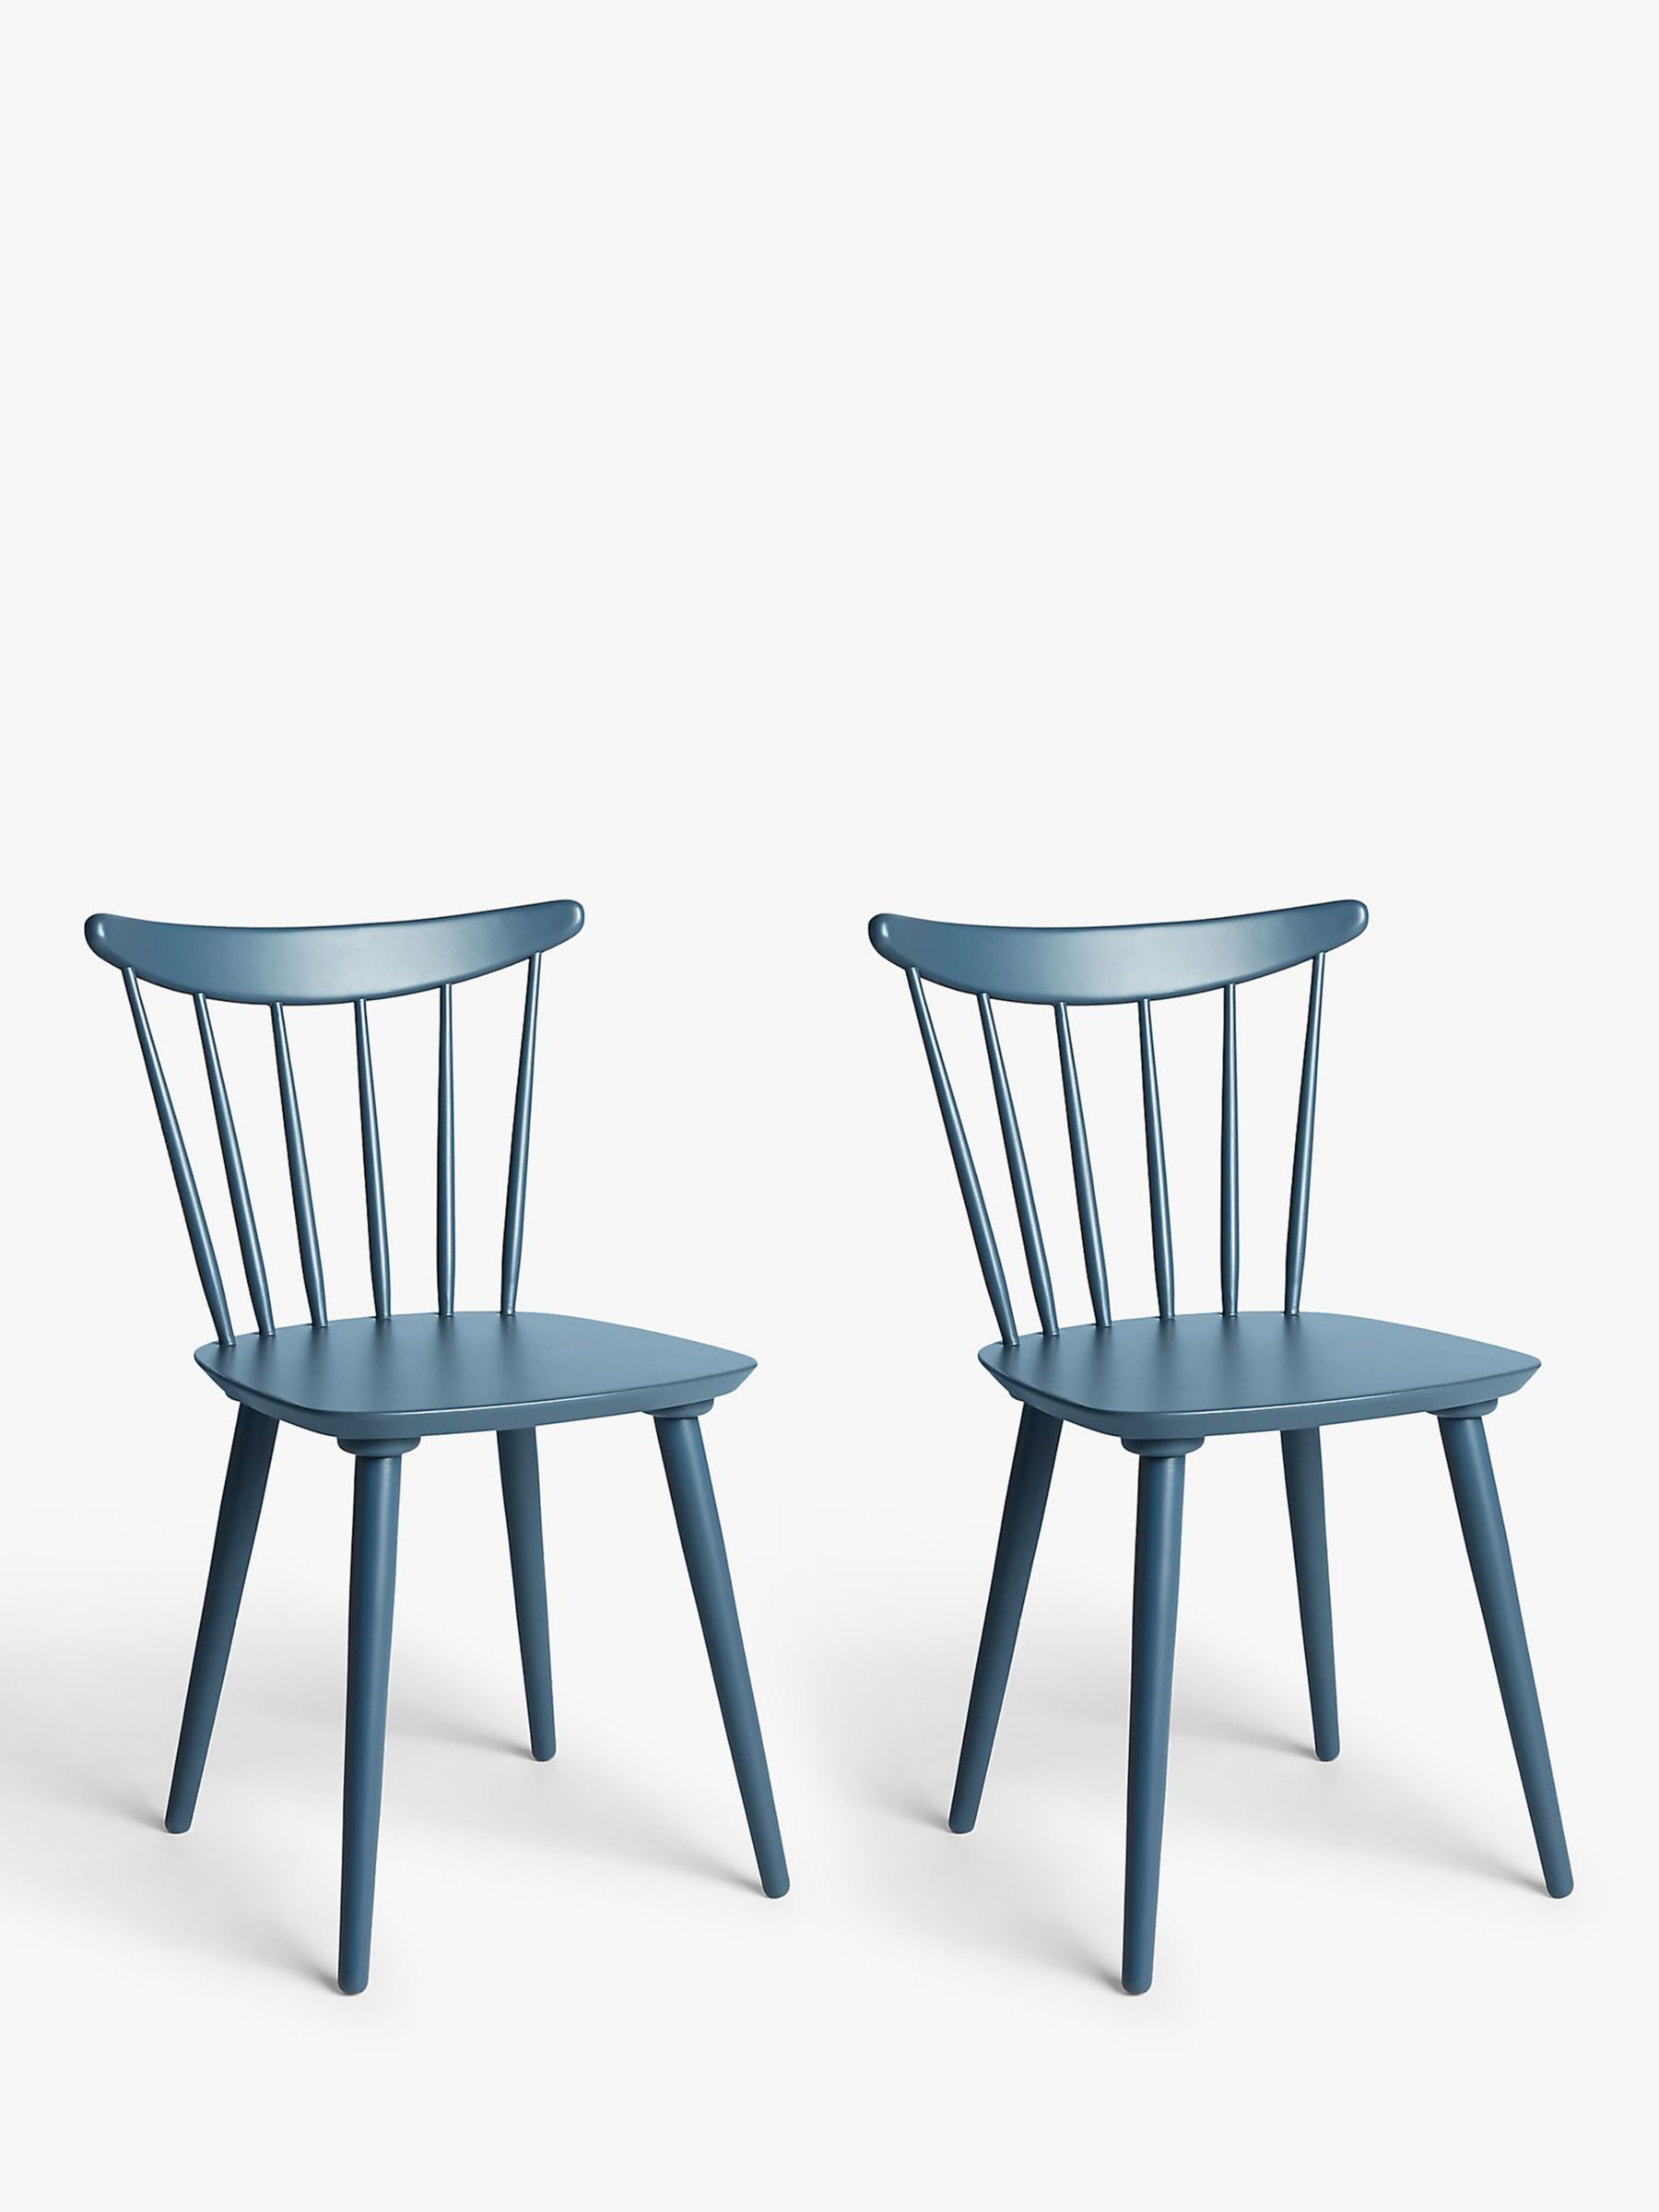 ANYDAY John Lewis & Partners Spindle Dining Chair, Set of 9, Blue